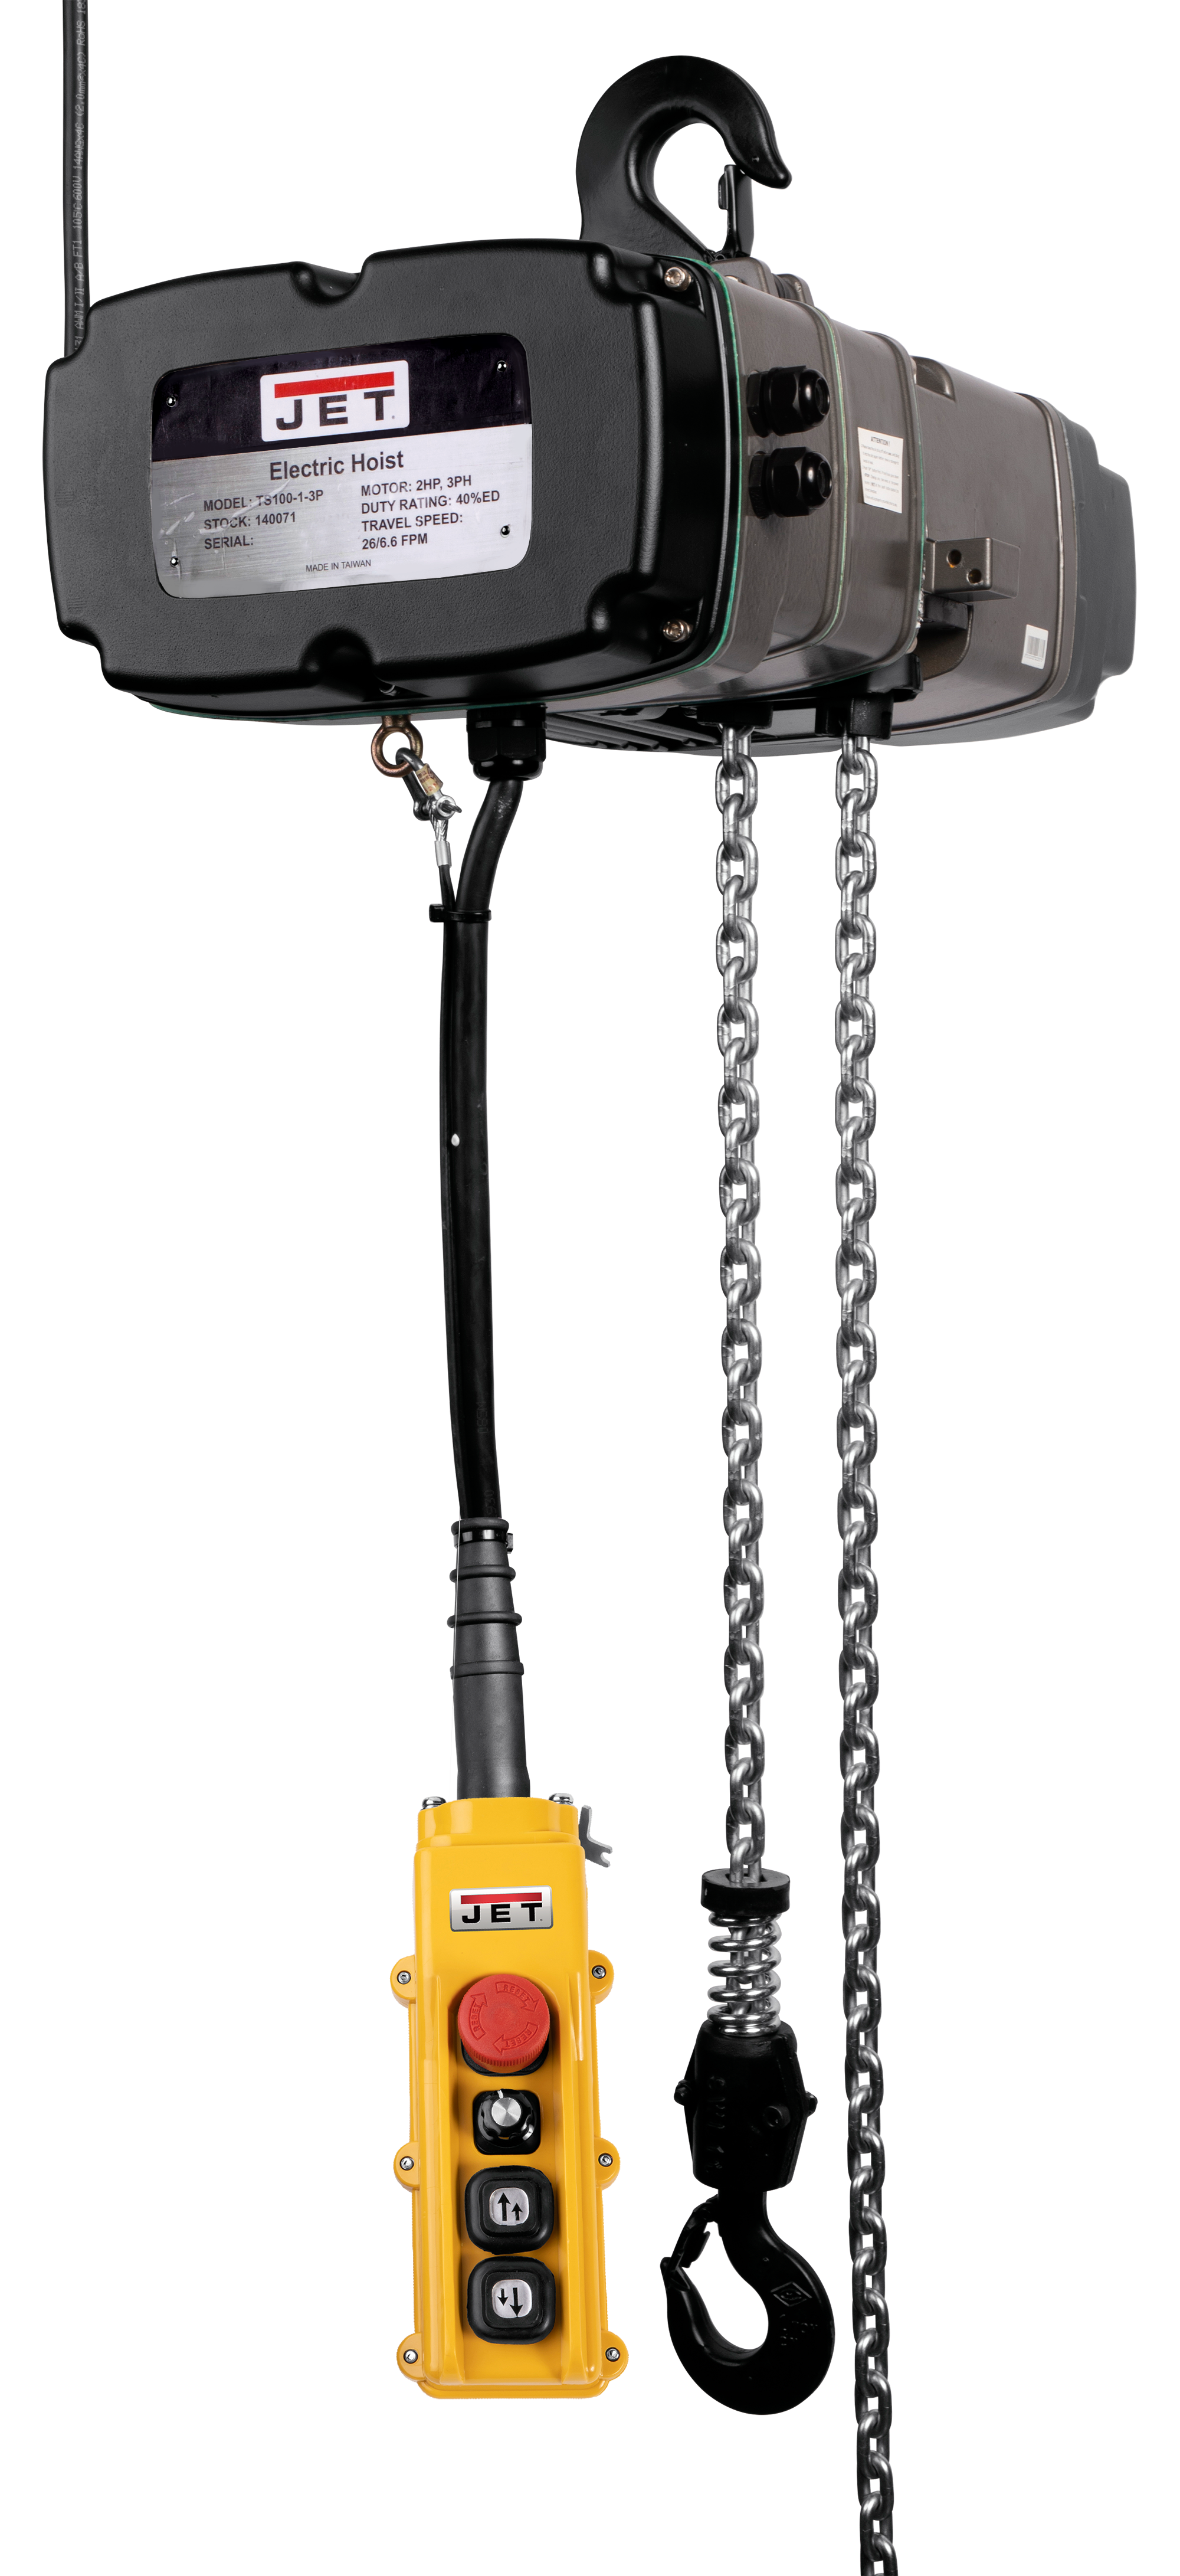 TS300-230-015, 3-Ton Two Speed Electric Chain Hoist  3-Phase 15' Lift